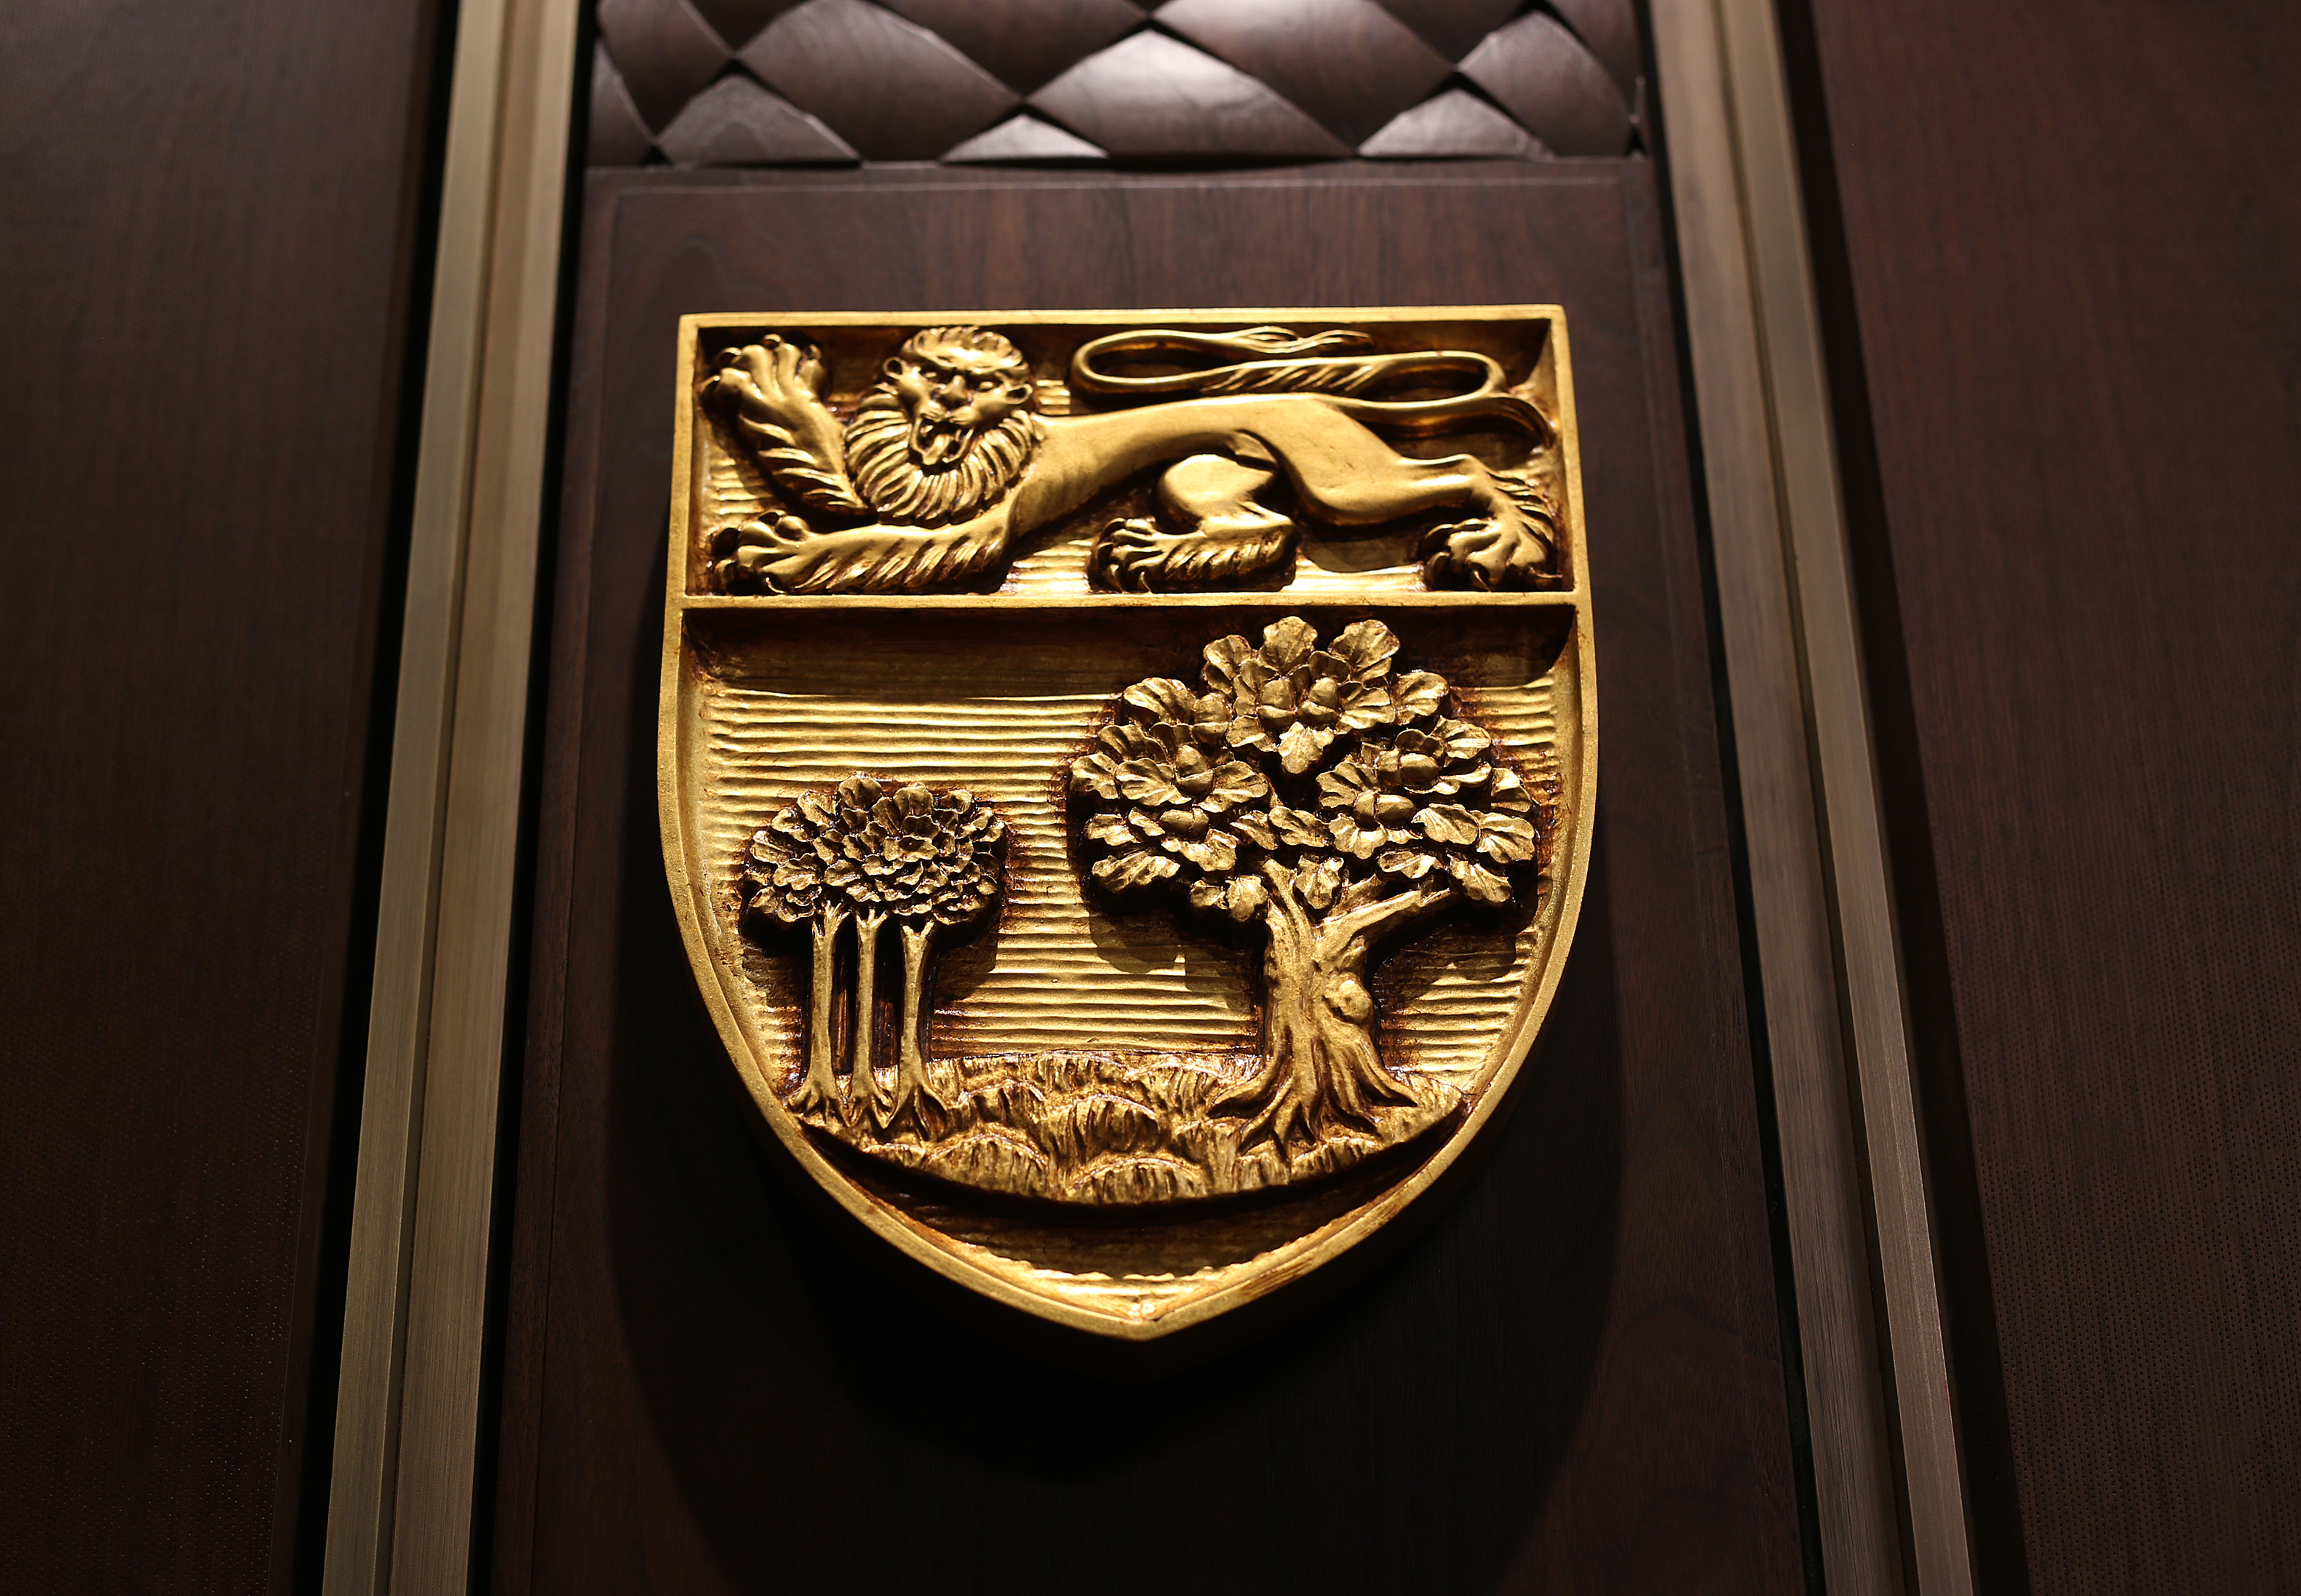 Provincial shield of Prince Edward Island, carving in Senate of Canada building